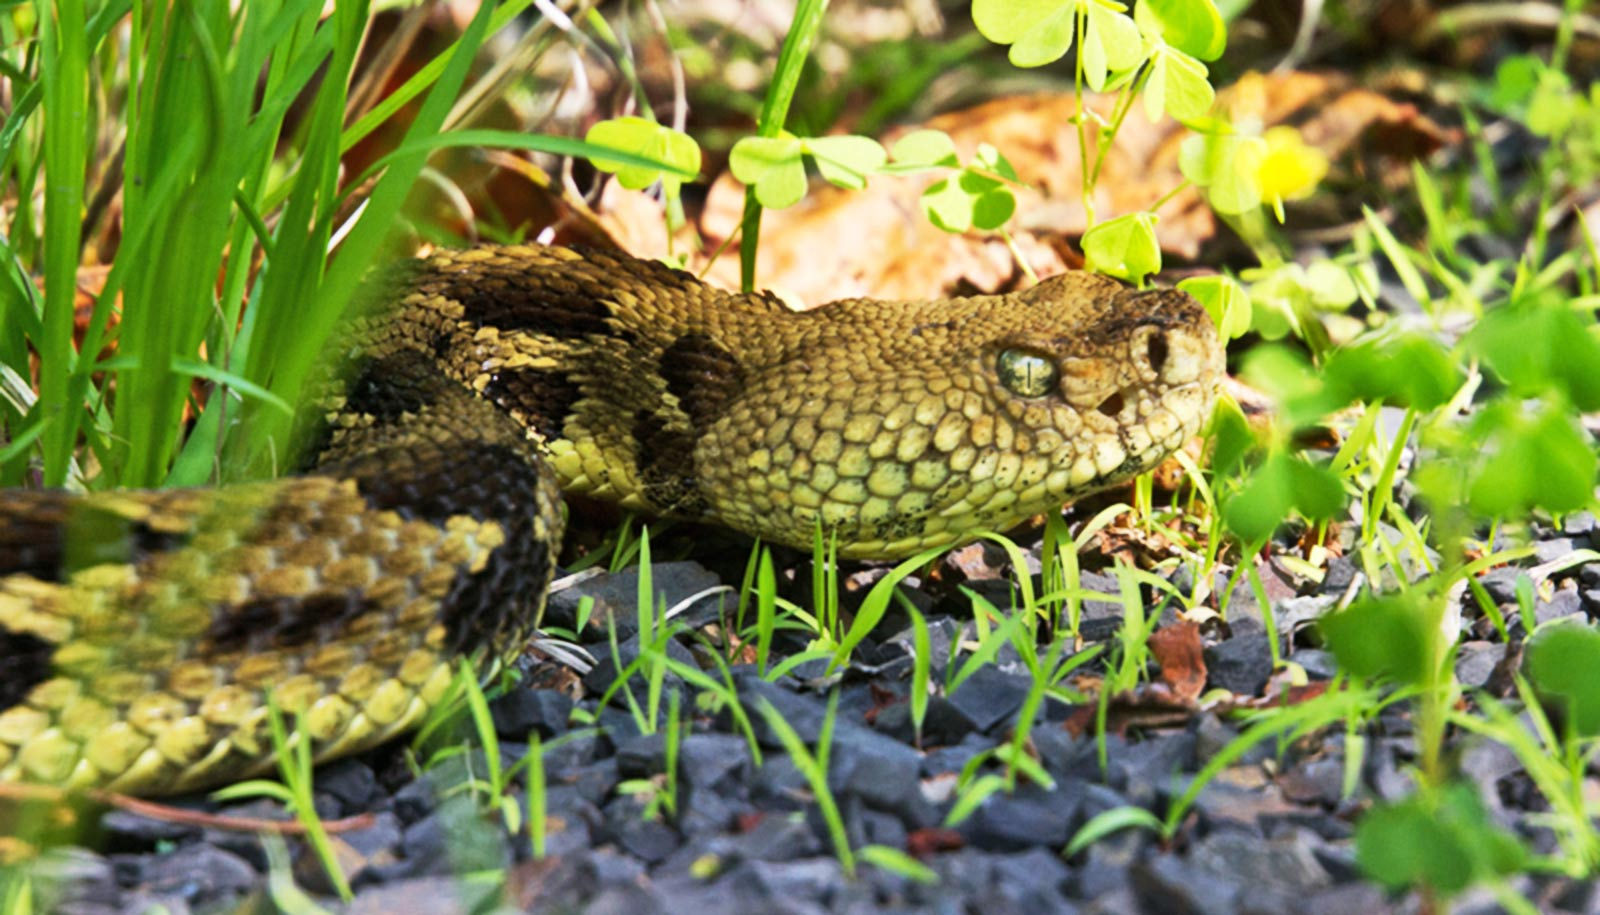 Sunny spots for rattlesnakes also attract predators - Futurity